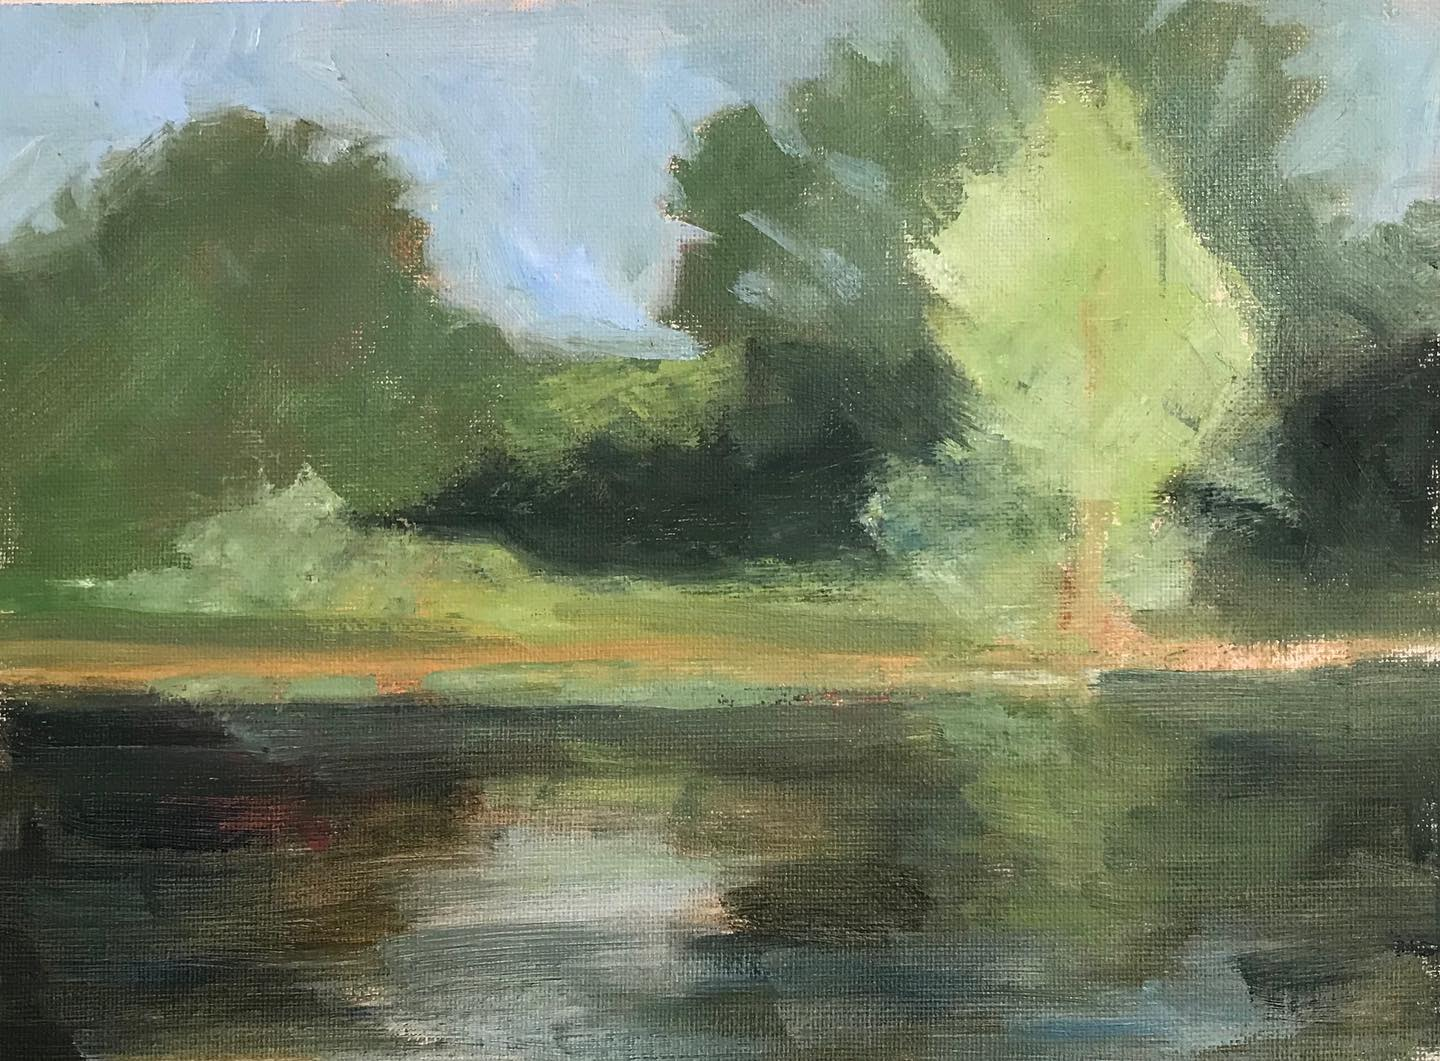 """Grampy's Pond""    oil on linen mounted on board, 7x10.5 inches"